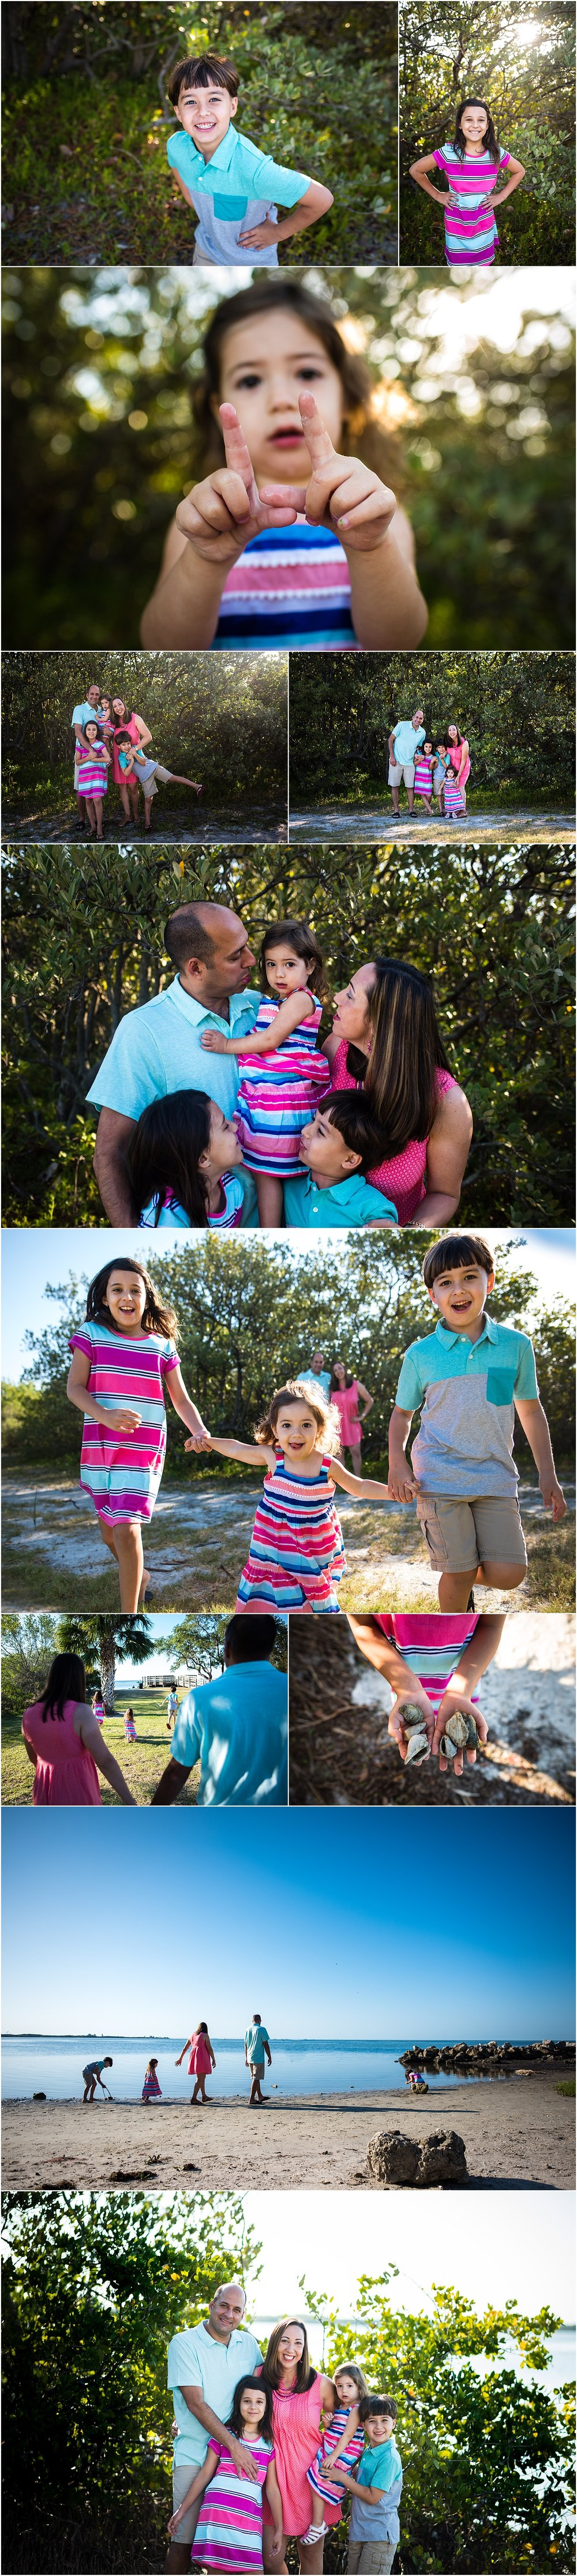 tampa family outdoor photography photo session